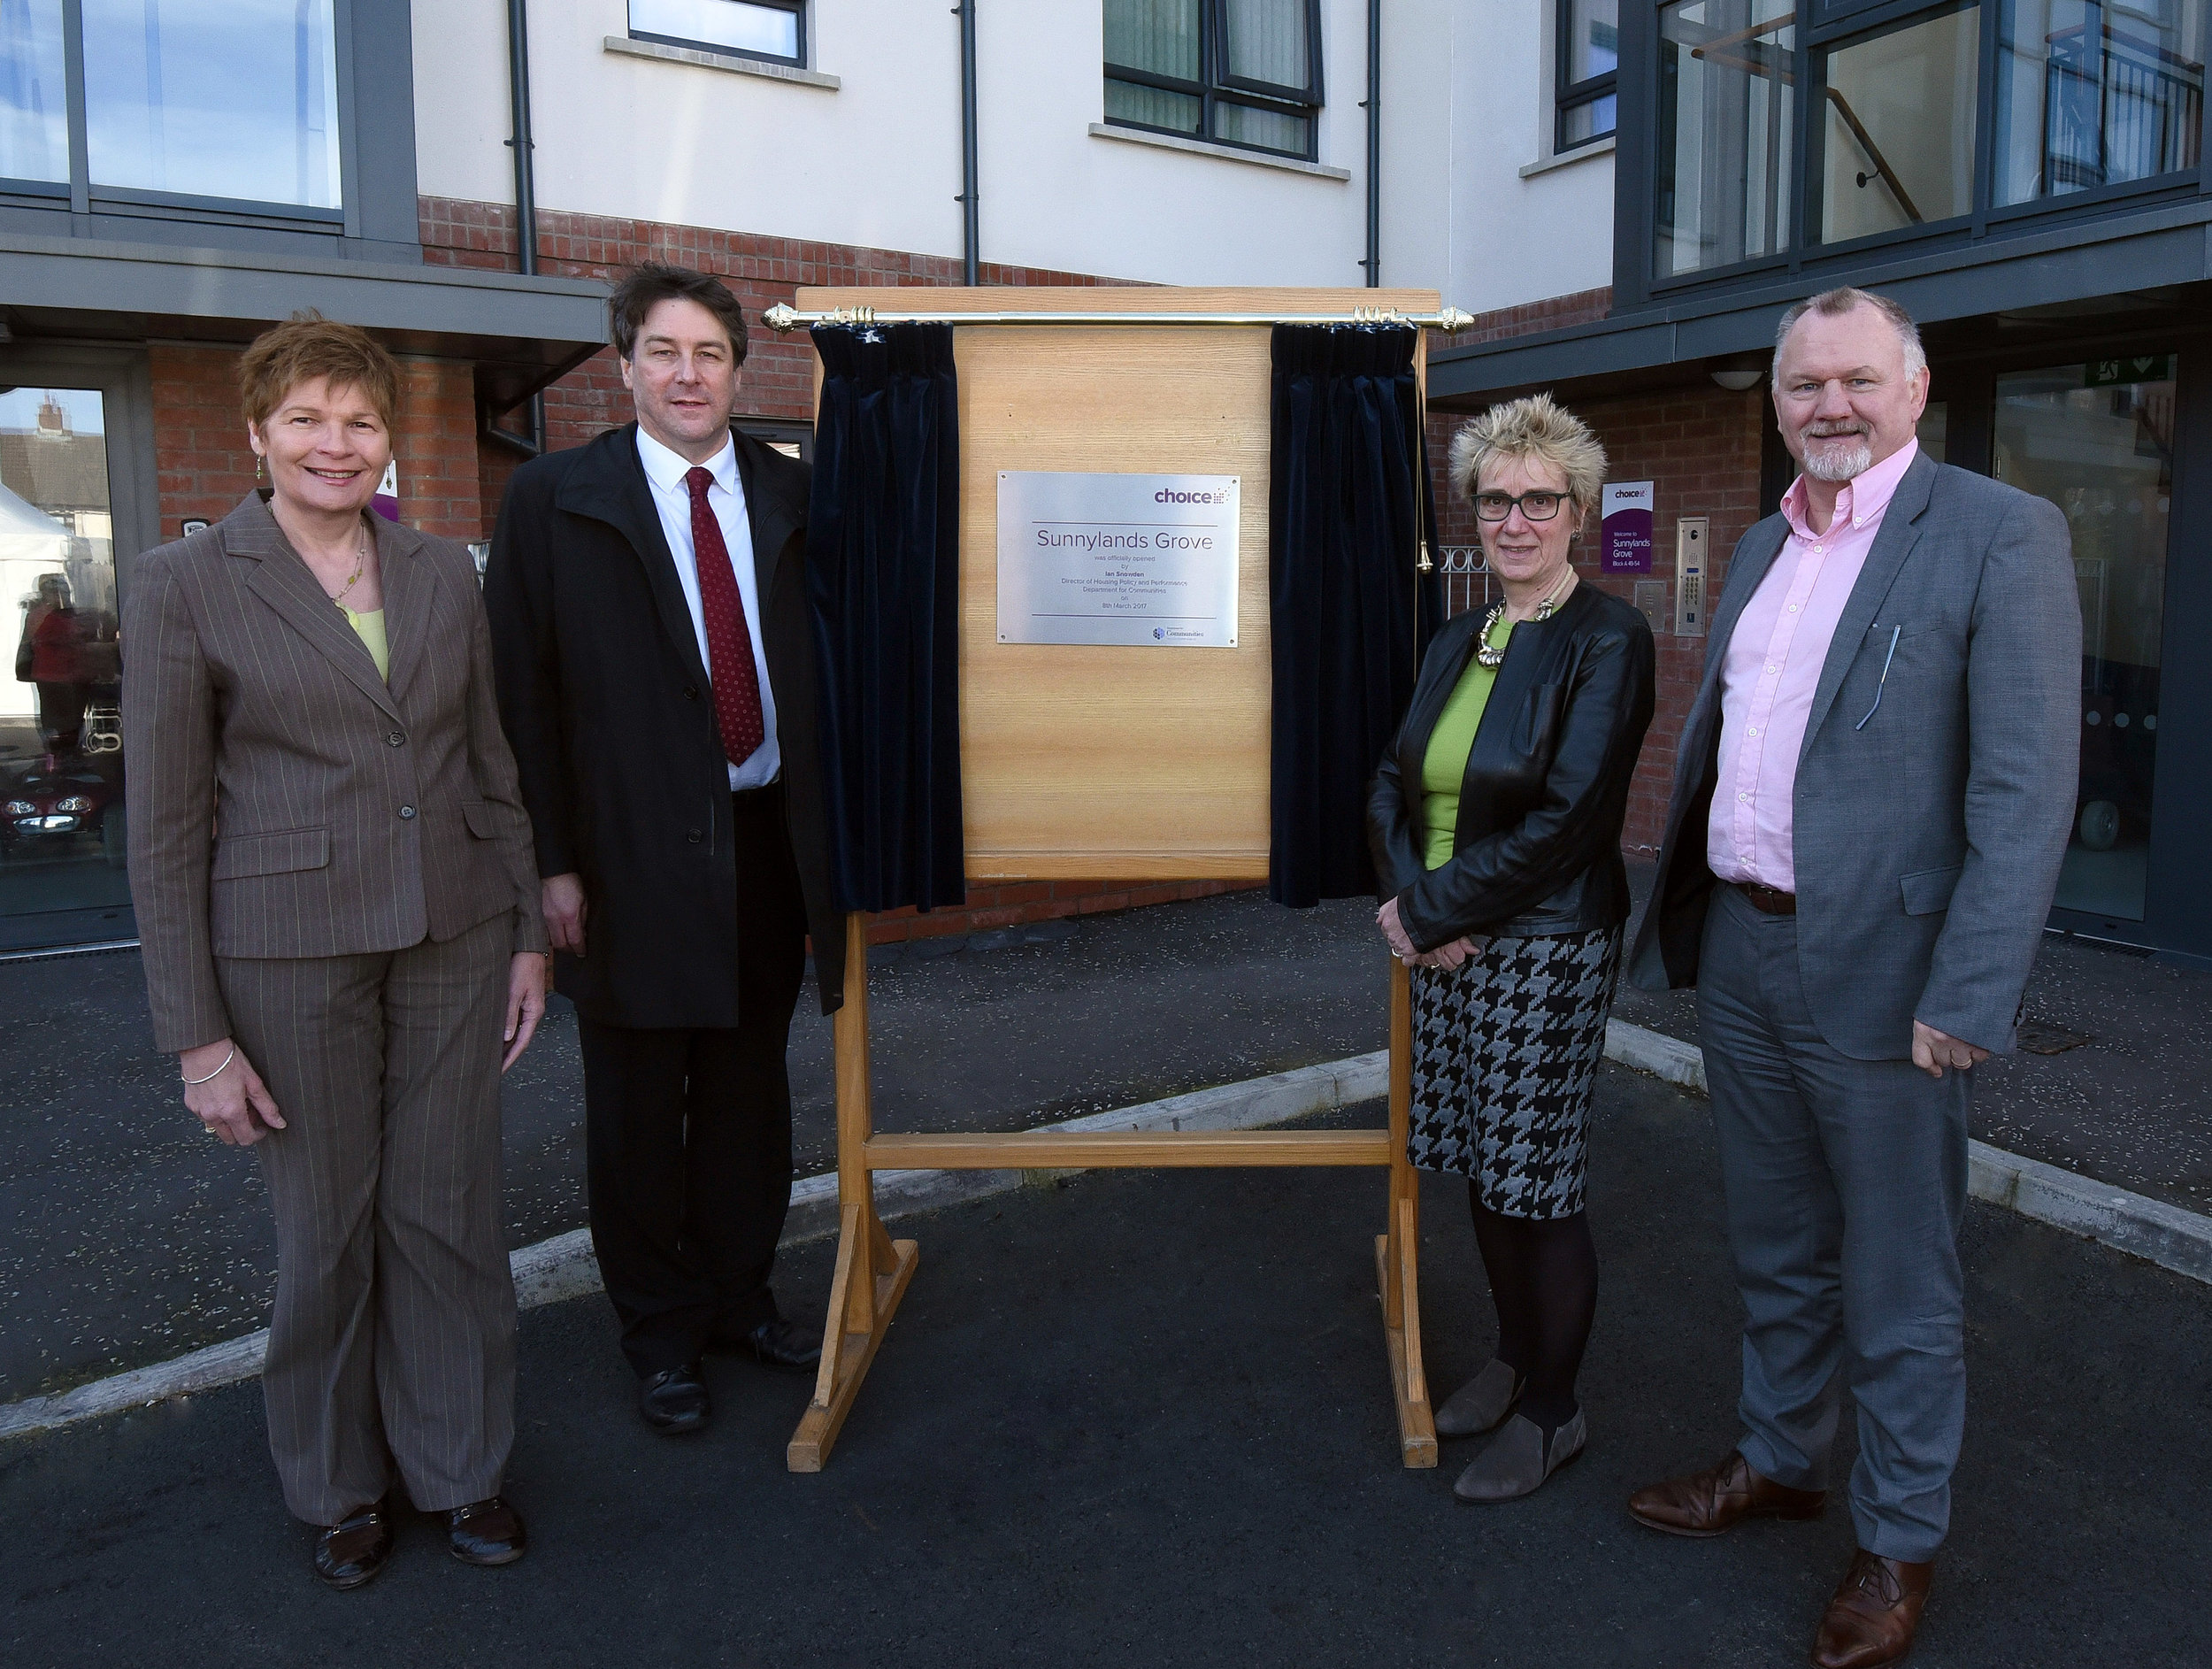 Left to right: Jayne McFaul (Choice Housing Ireland), Ian Snowden (Director of Housing Policy and Performance at the Department for Communities), Hazel Bell (Chair of Choice) and Harry Rolston (Rolston Architects)